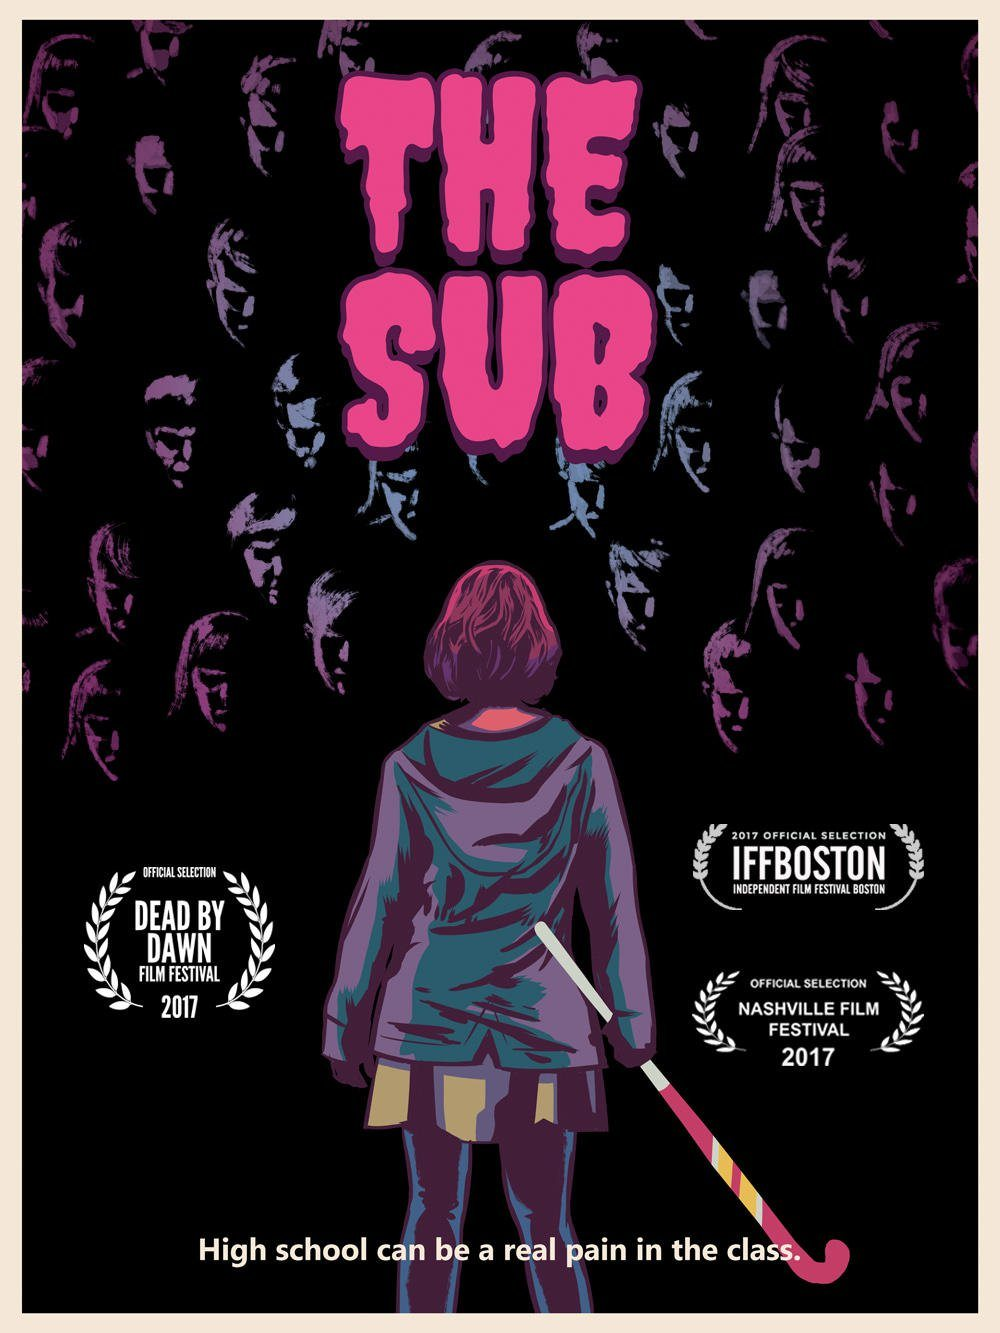 Need a Laugh? Check Out This Short 'The Sub'